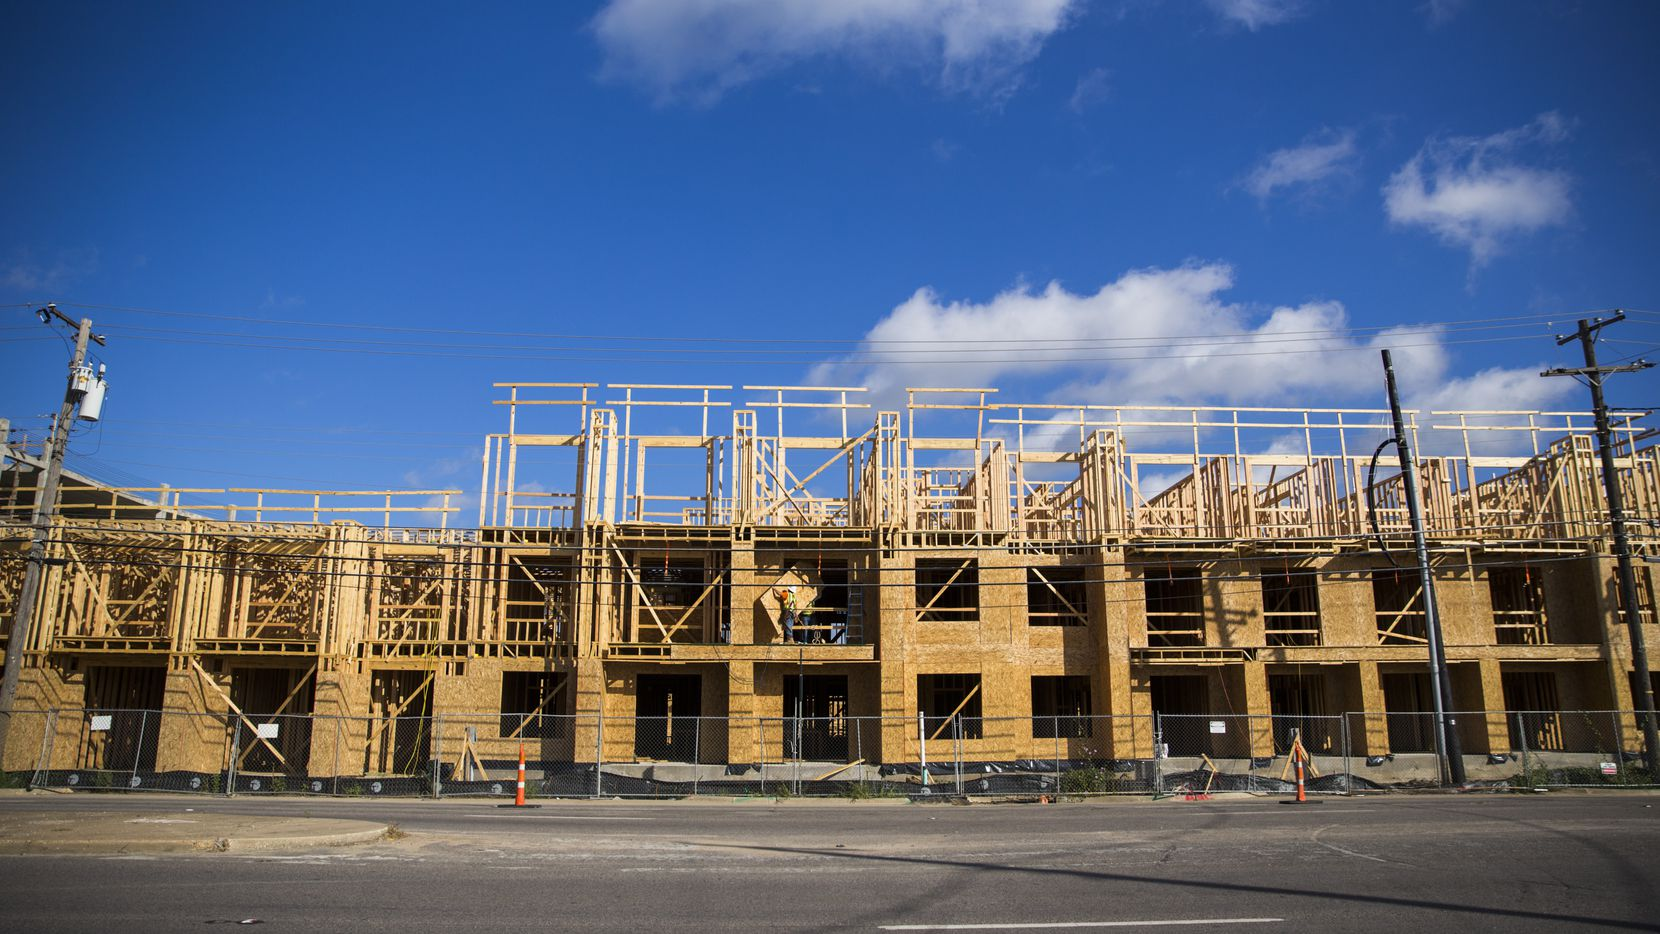 Dallas-area apartment builders have filed permits to start more than 20,000 additional units through the third quarter.